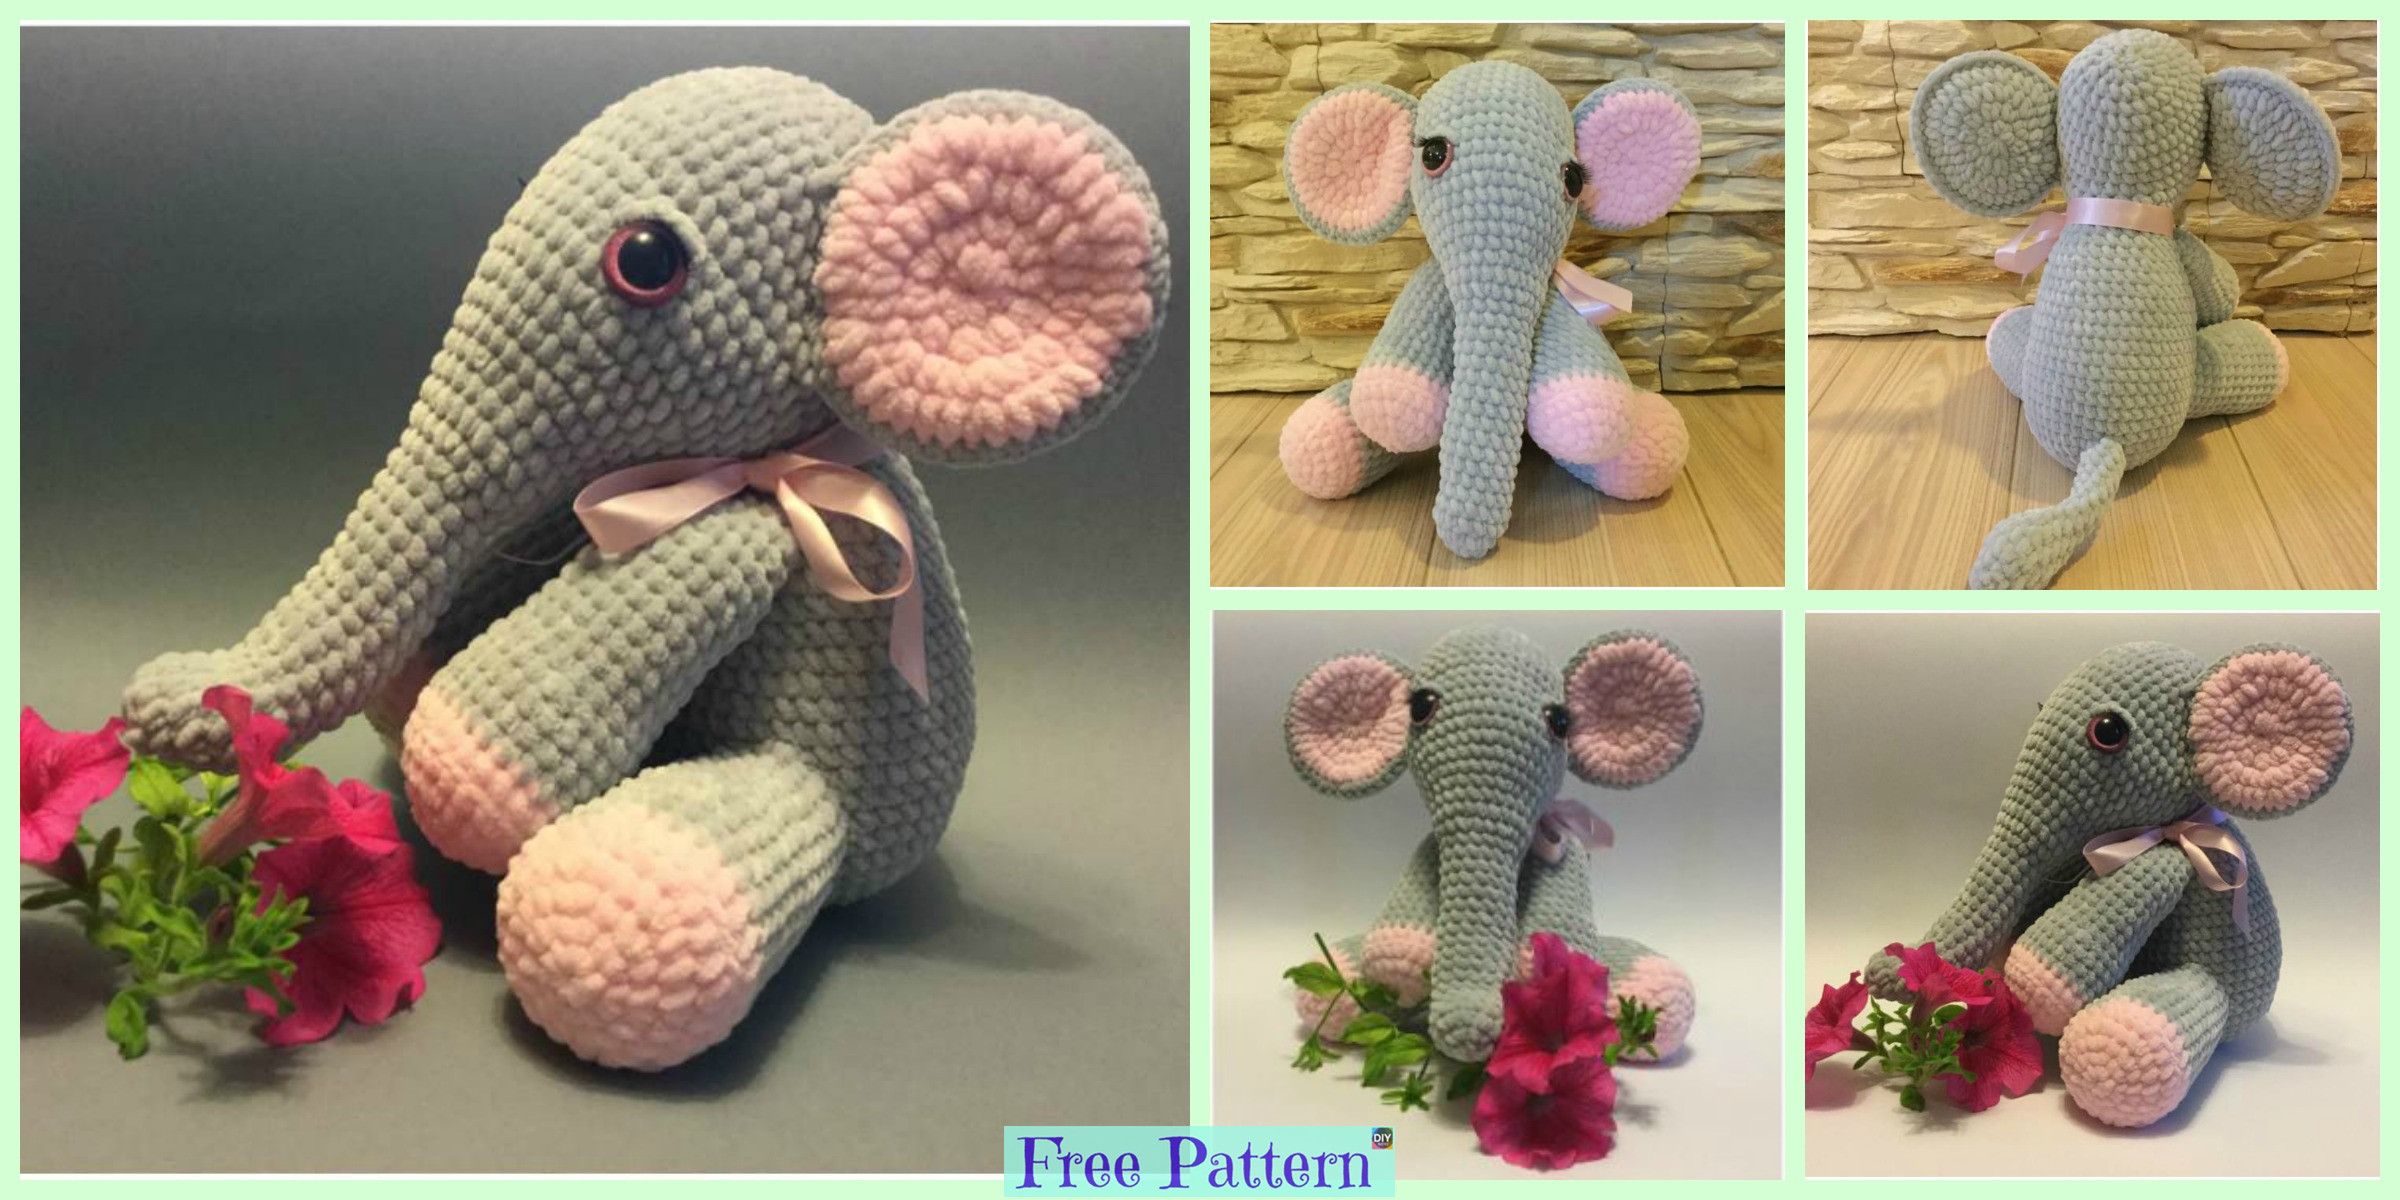 Crochet Lady Elephant – Free Pattern